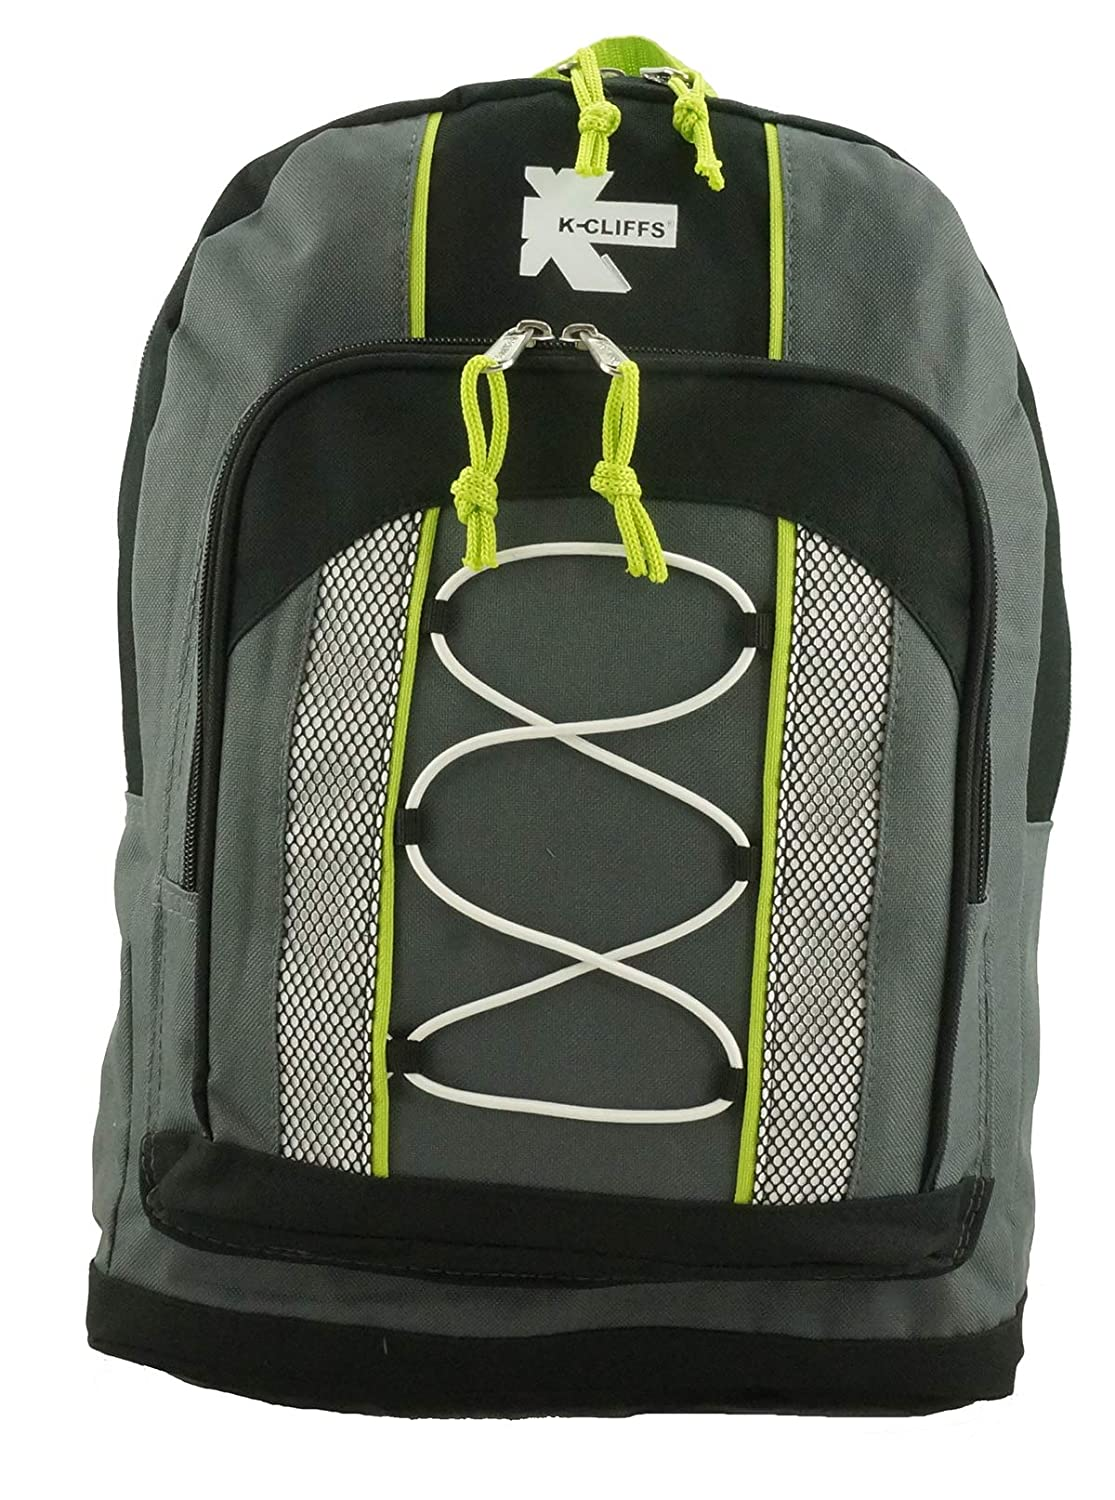 """Teens Daypack Bungee Water Resistant for Travel School and College Unisex Padded Adjustable Straps for Casual Everyday Use Kids and Adults 30pcs Wholesale 15/"""" Lightweight Backpack Grey"""